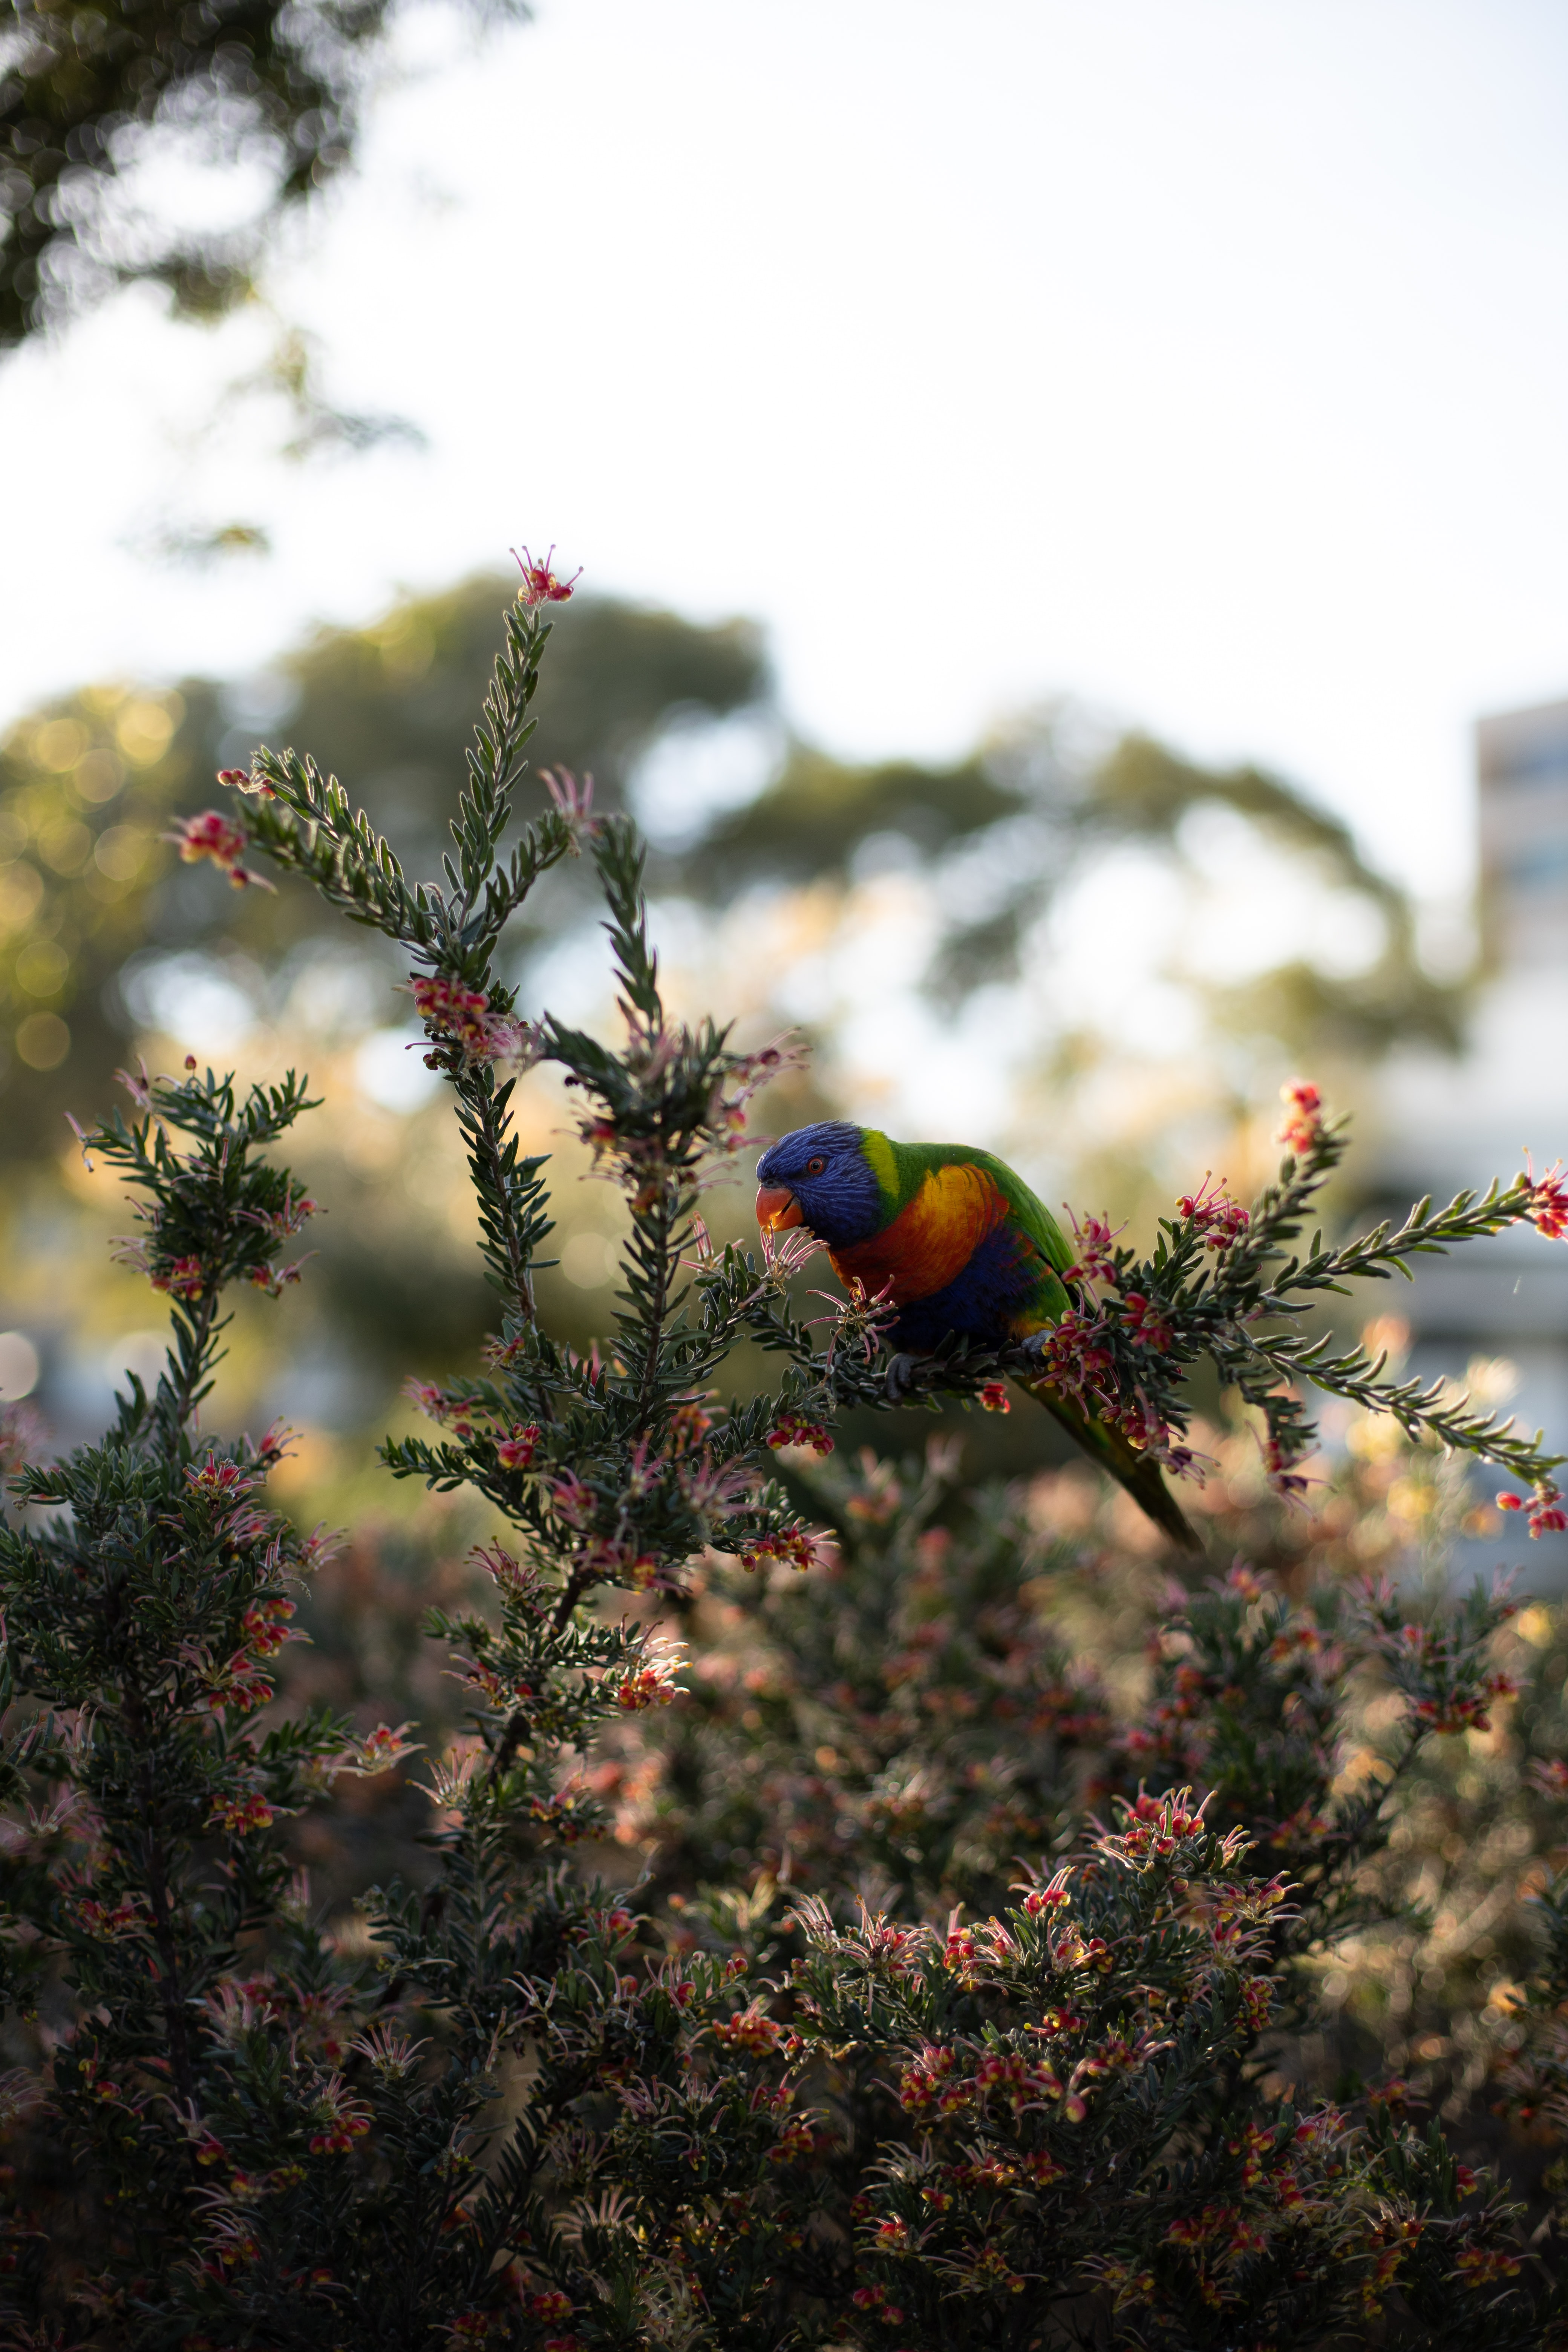 124315 download wallpaper Animals, Parrots, Bird, Bright, Branches, Plant screensavers and pictures for free